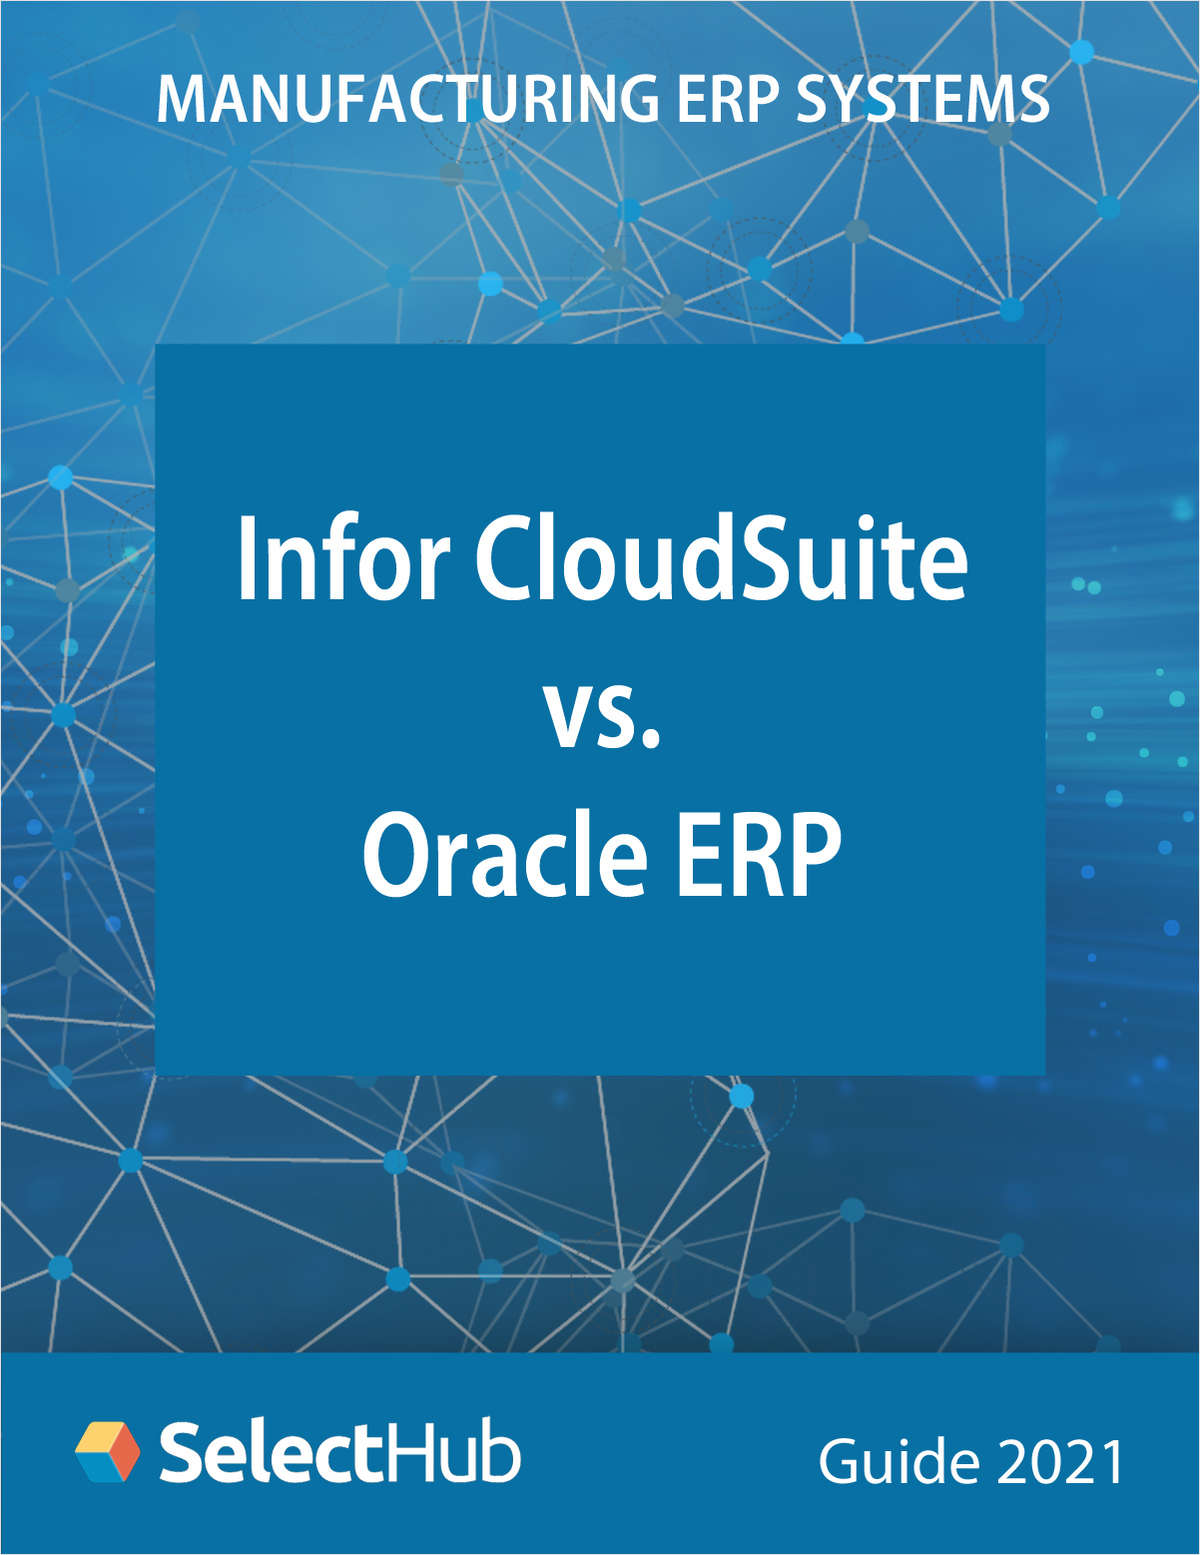 Infor CloudSuite vs. Oracle Cloud ERP--18 Key Manufacturing Capabilities Compared